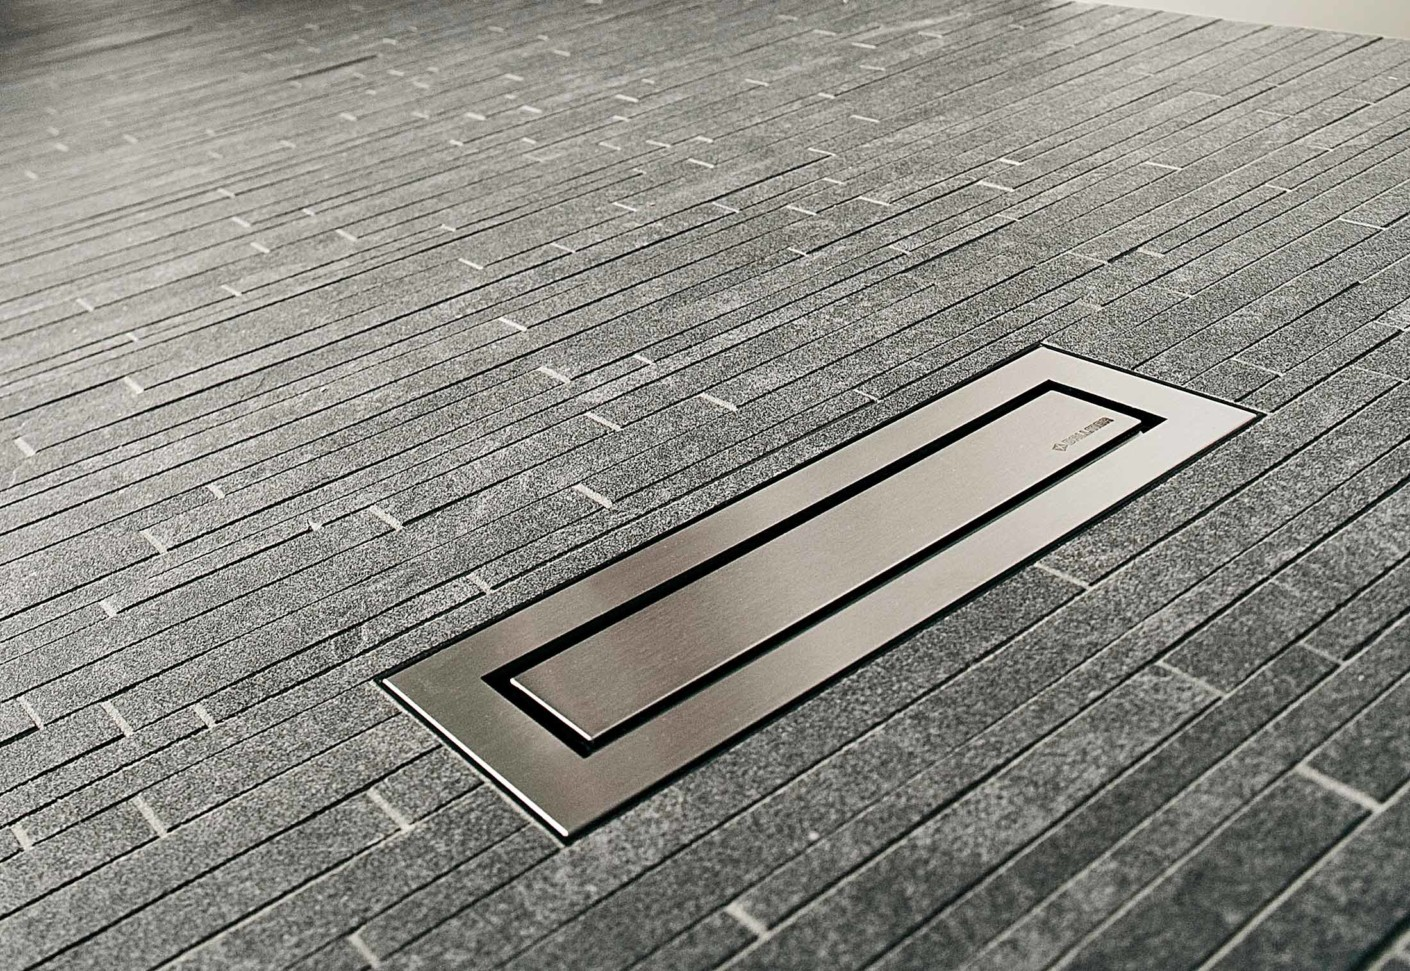 Bathroom Tile Floor Drain : Linear floor drain ceraniveau by dallmer stylepark